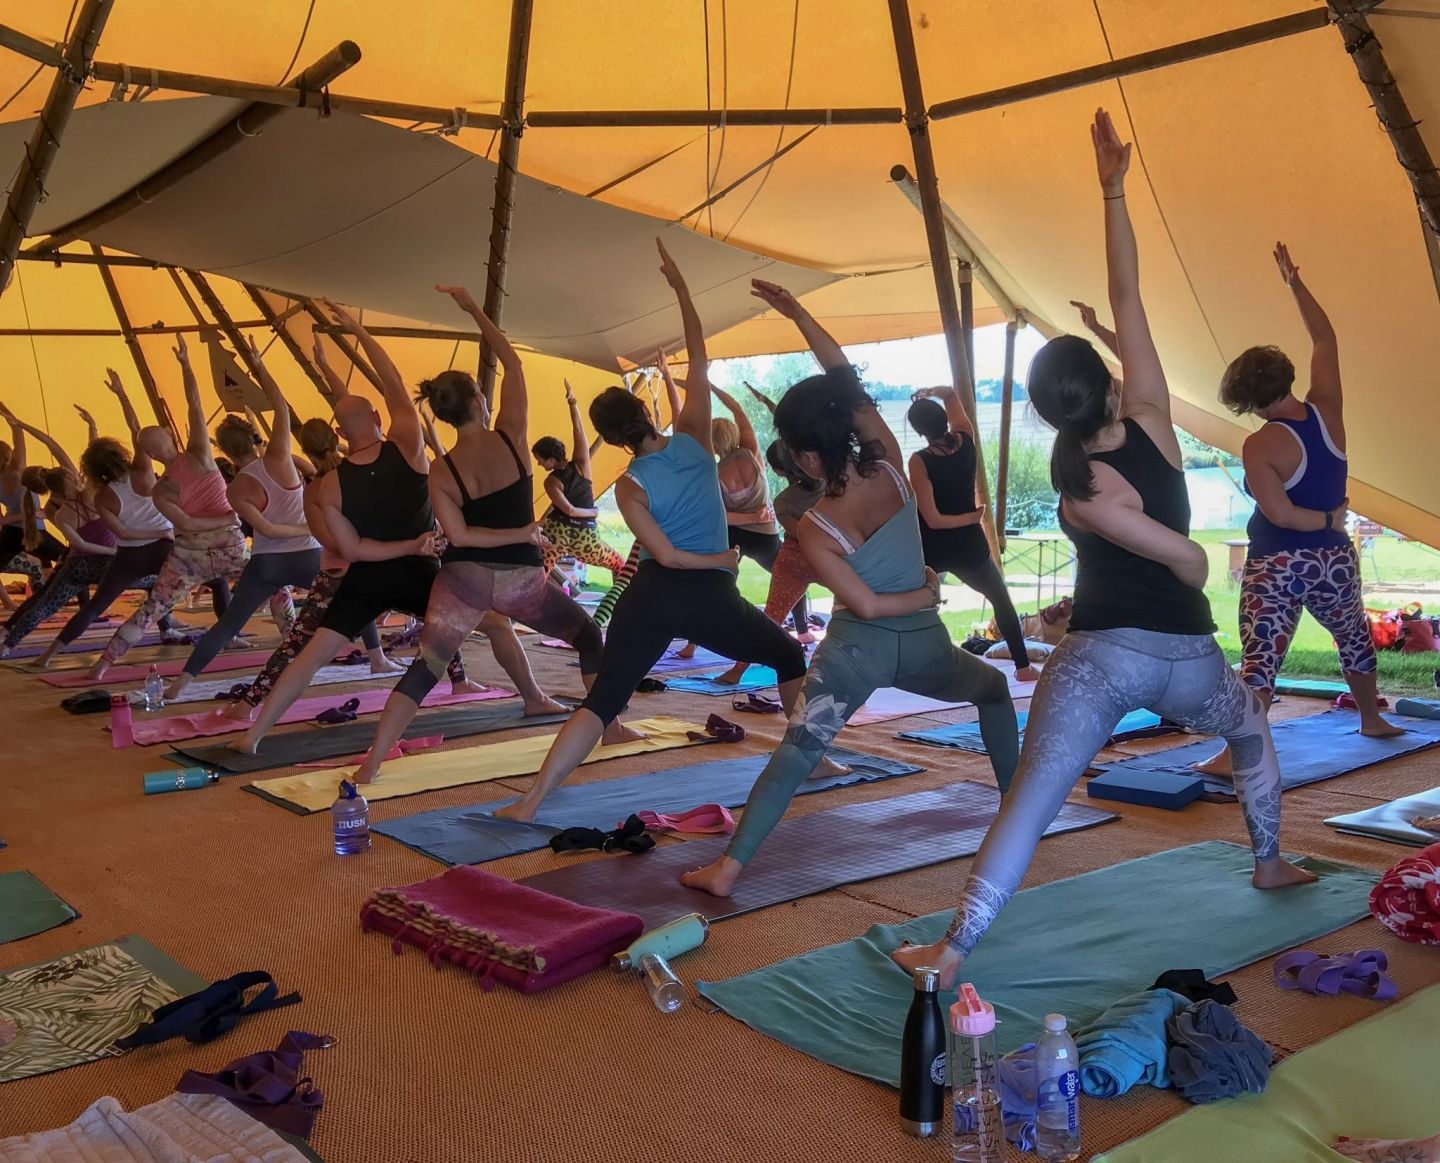 stretch and flex at the summer yoga festival